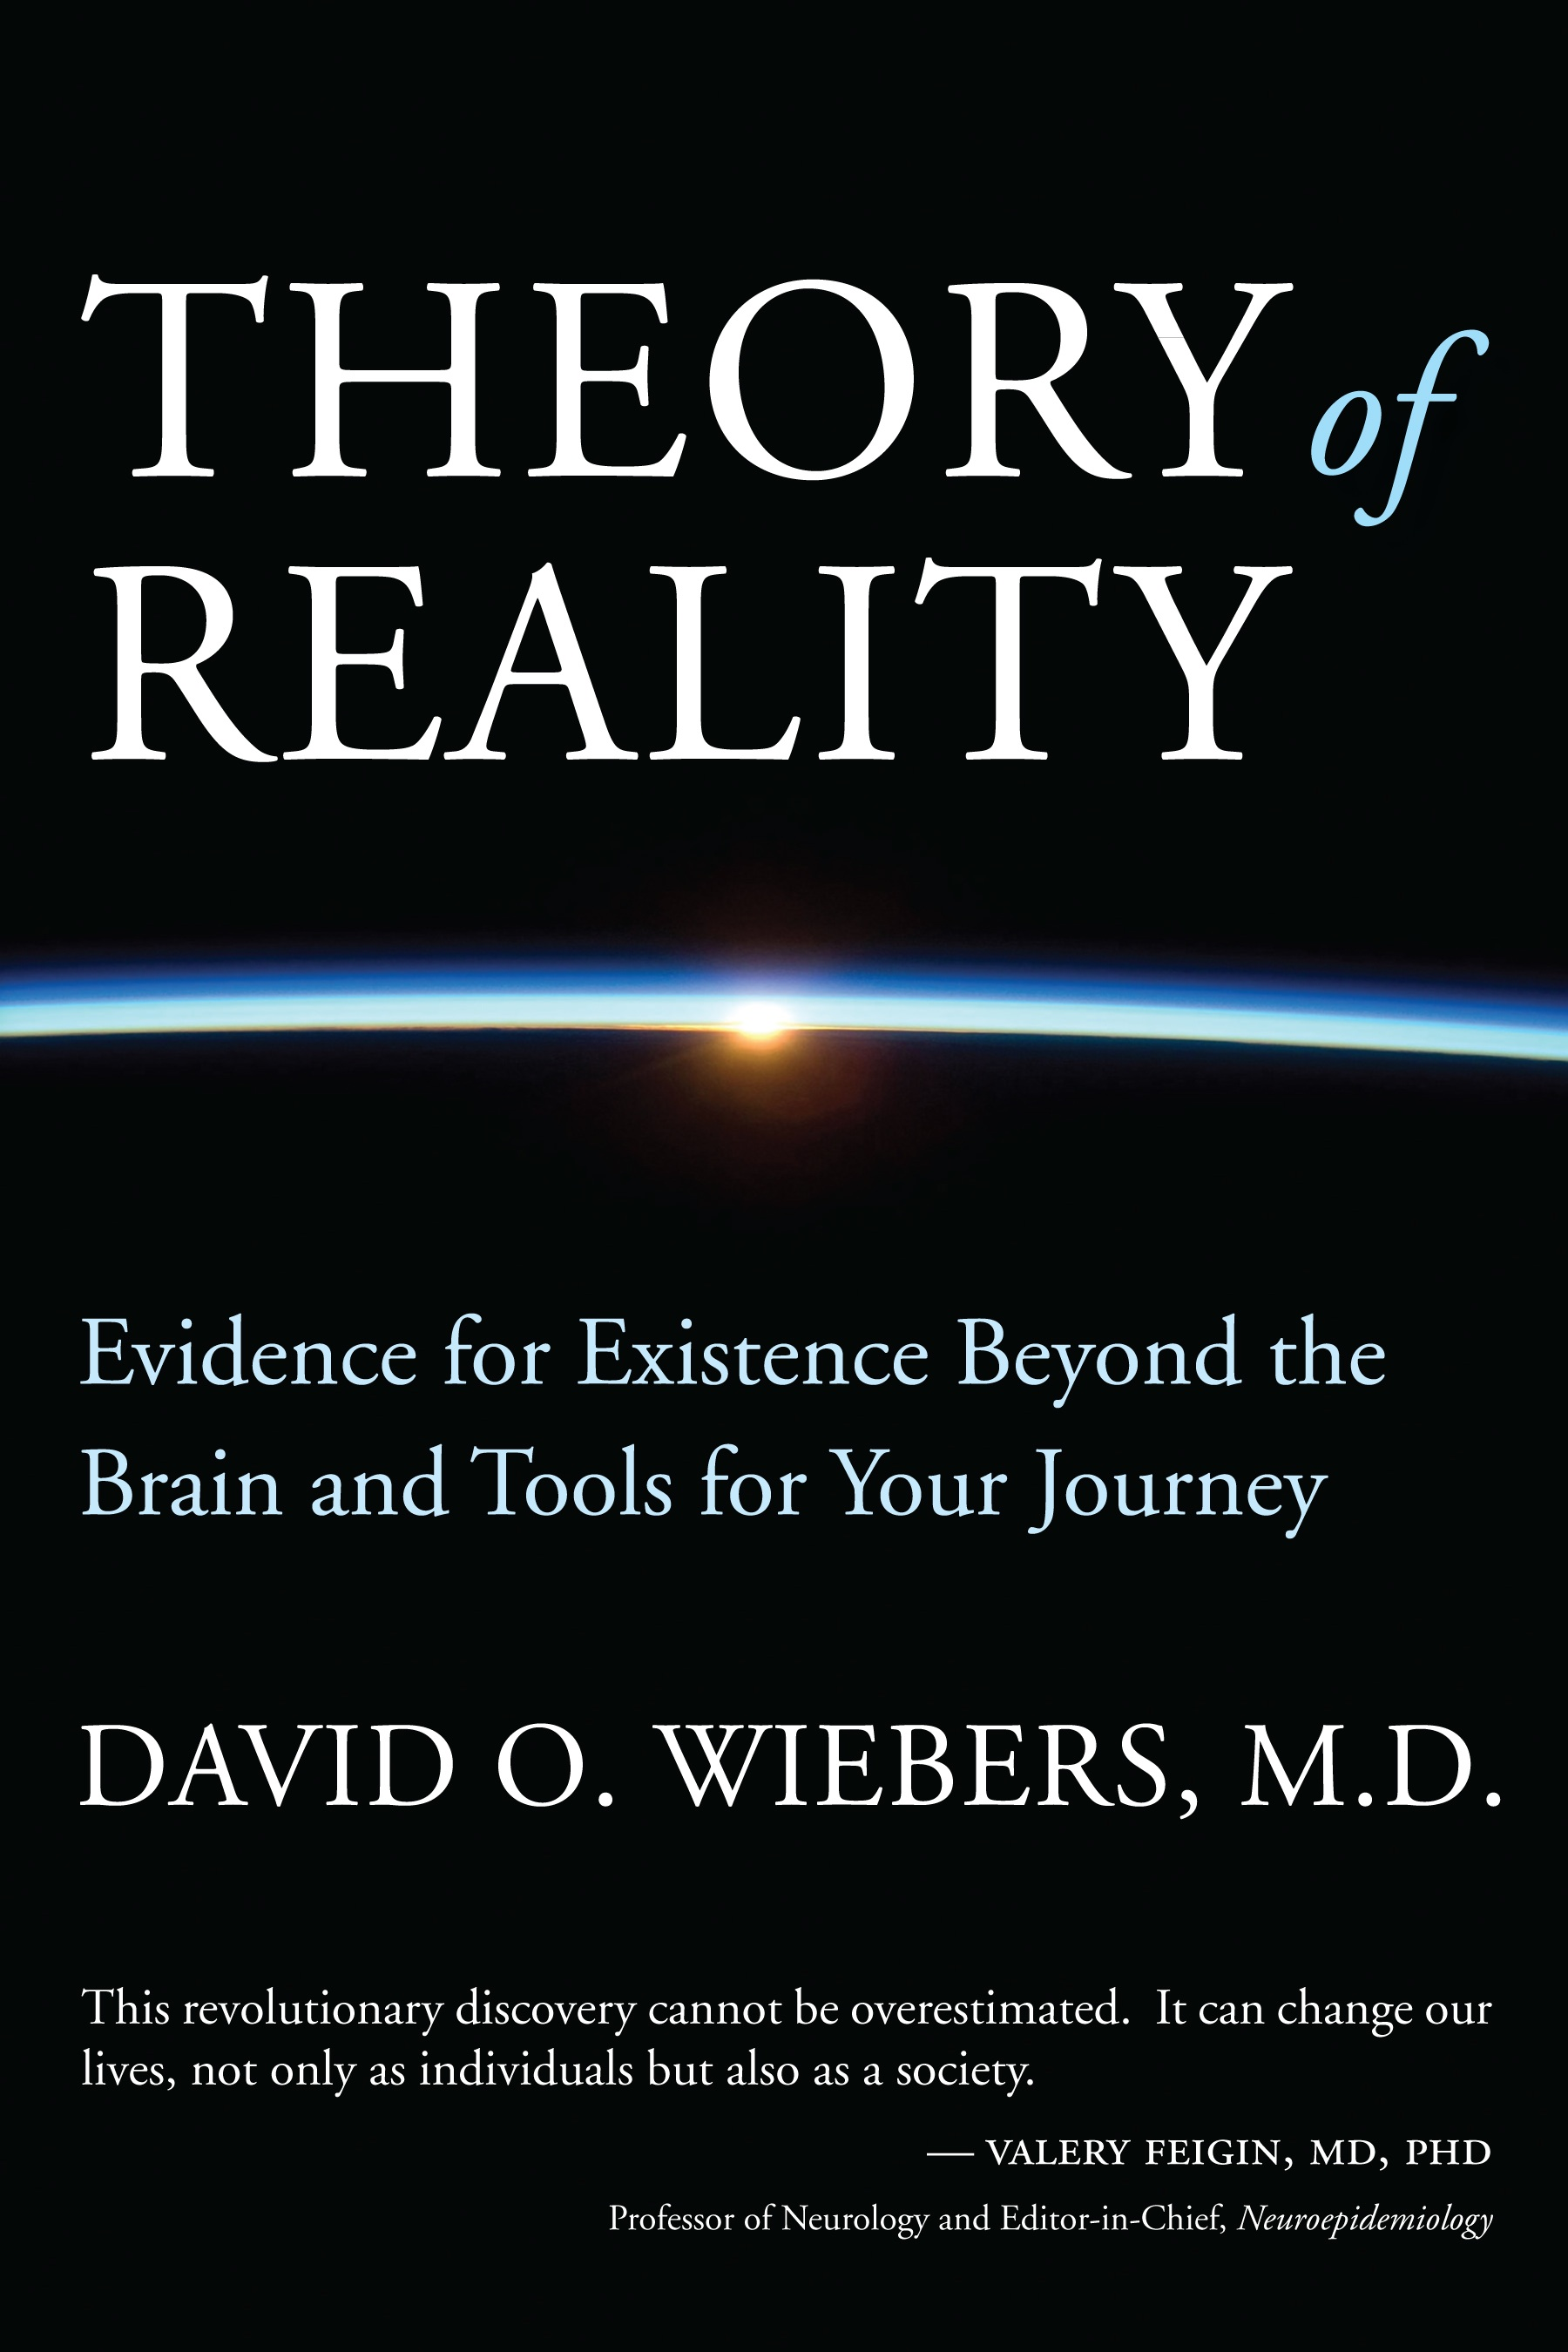 """""""This revolutionary discovery cannot be overestimated. It can change our lives, not only as individuals but also as a society. Dr. Wiebers makes a compelling case for applying the Theory of Reality to the ultimate understanding of ourselves, the purpose of our existence and our place in the universe. The underlying concepts are fully explained and proven using scientific rigor to scrutinize critical evidence in a way that has heretofore not been achieved.""""   -Valery Feigin, MD, PhD, Professor of Neurology and Editor-in-Chief, Neuroepidemiology   """"Theory of Reality is a stunning achievement – a masterful synthesis of neuroscience, physics and the new disciplines of frontier science, the findings of which all point to the primacy of consciousness. An intellectual tour de force, David Wiebers' book can and should fundamentally alter the scientific enterprise of the twenty-first century. One of Kuhn's scientific revolutions may well be in the offing.""""   -Kenneth Ring, Ph.D.  Emeritus Professor of Psychology, University of Connecticut."""